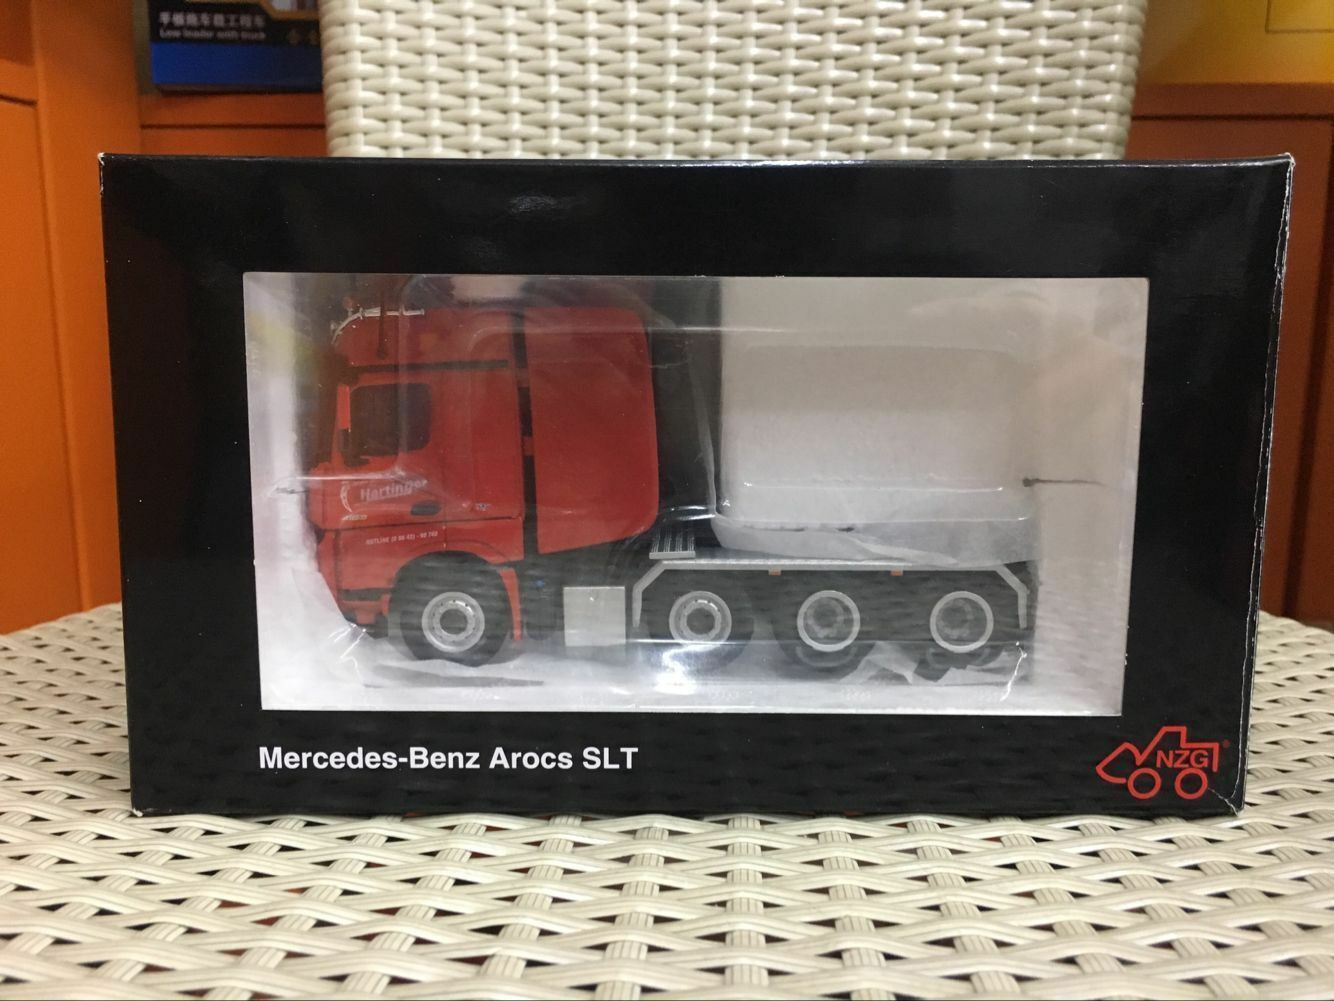 NZG 9371 02 Mercedes Benz Arocs Big Space SLT 4 Axle Hartinger Red 1 50 Tractor